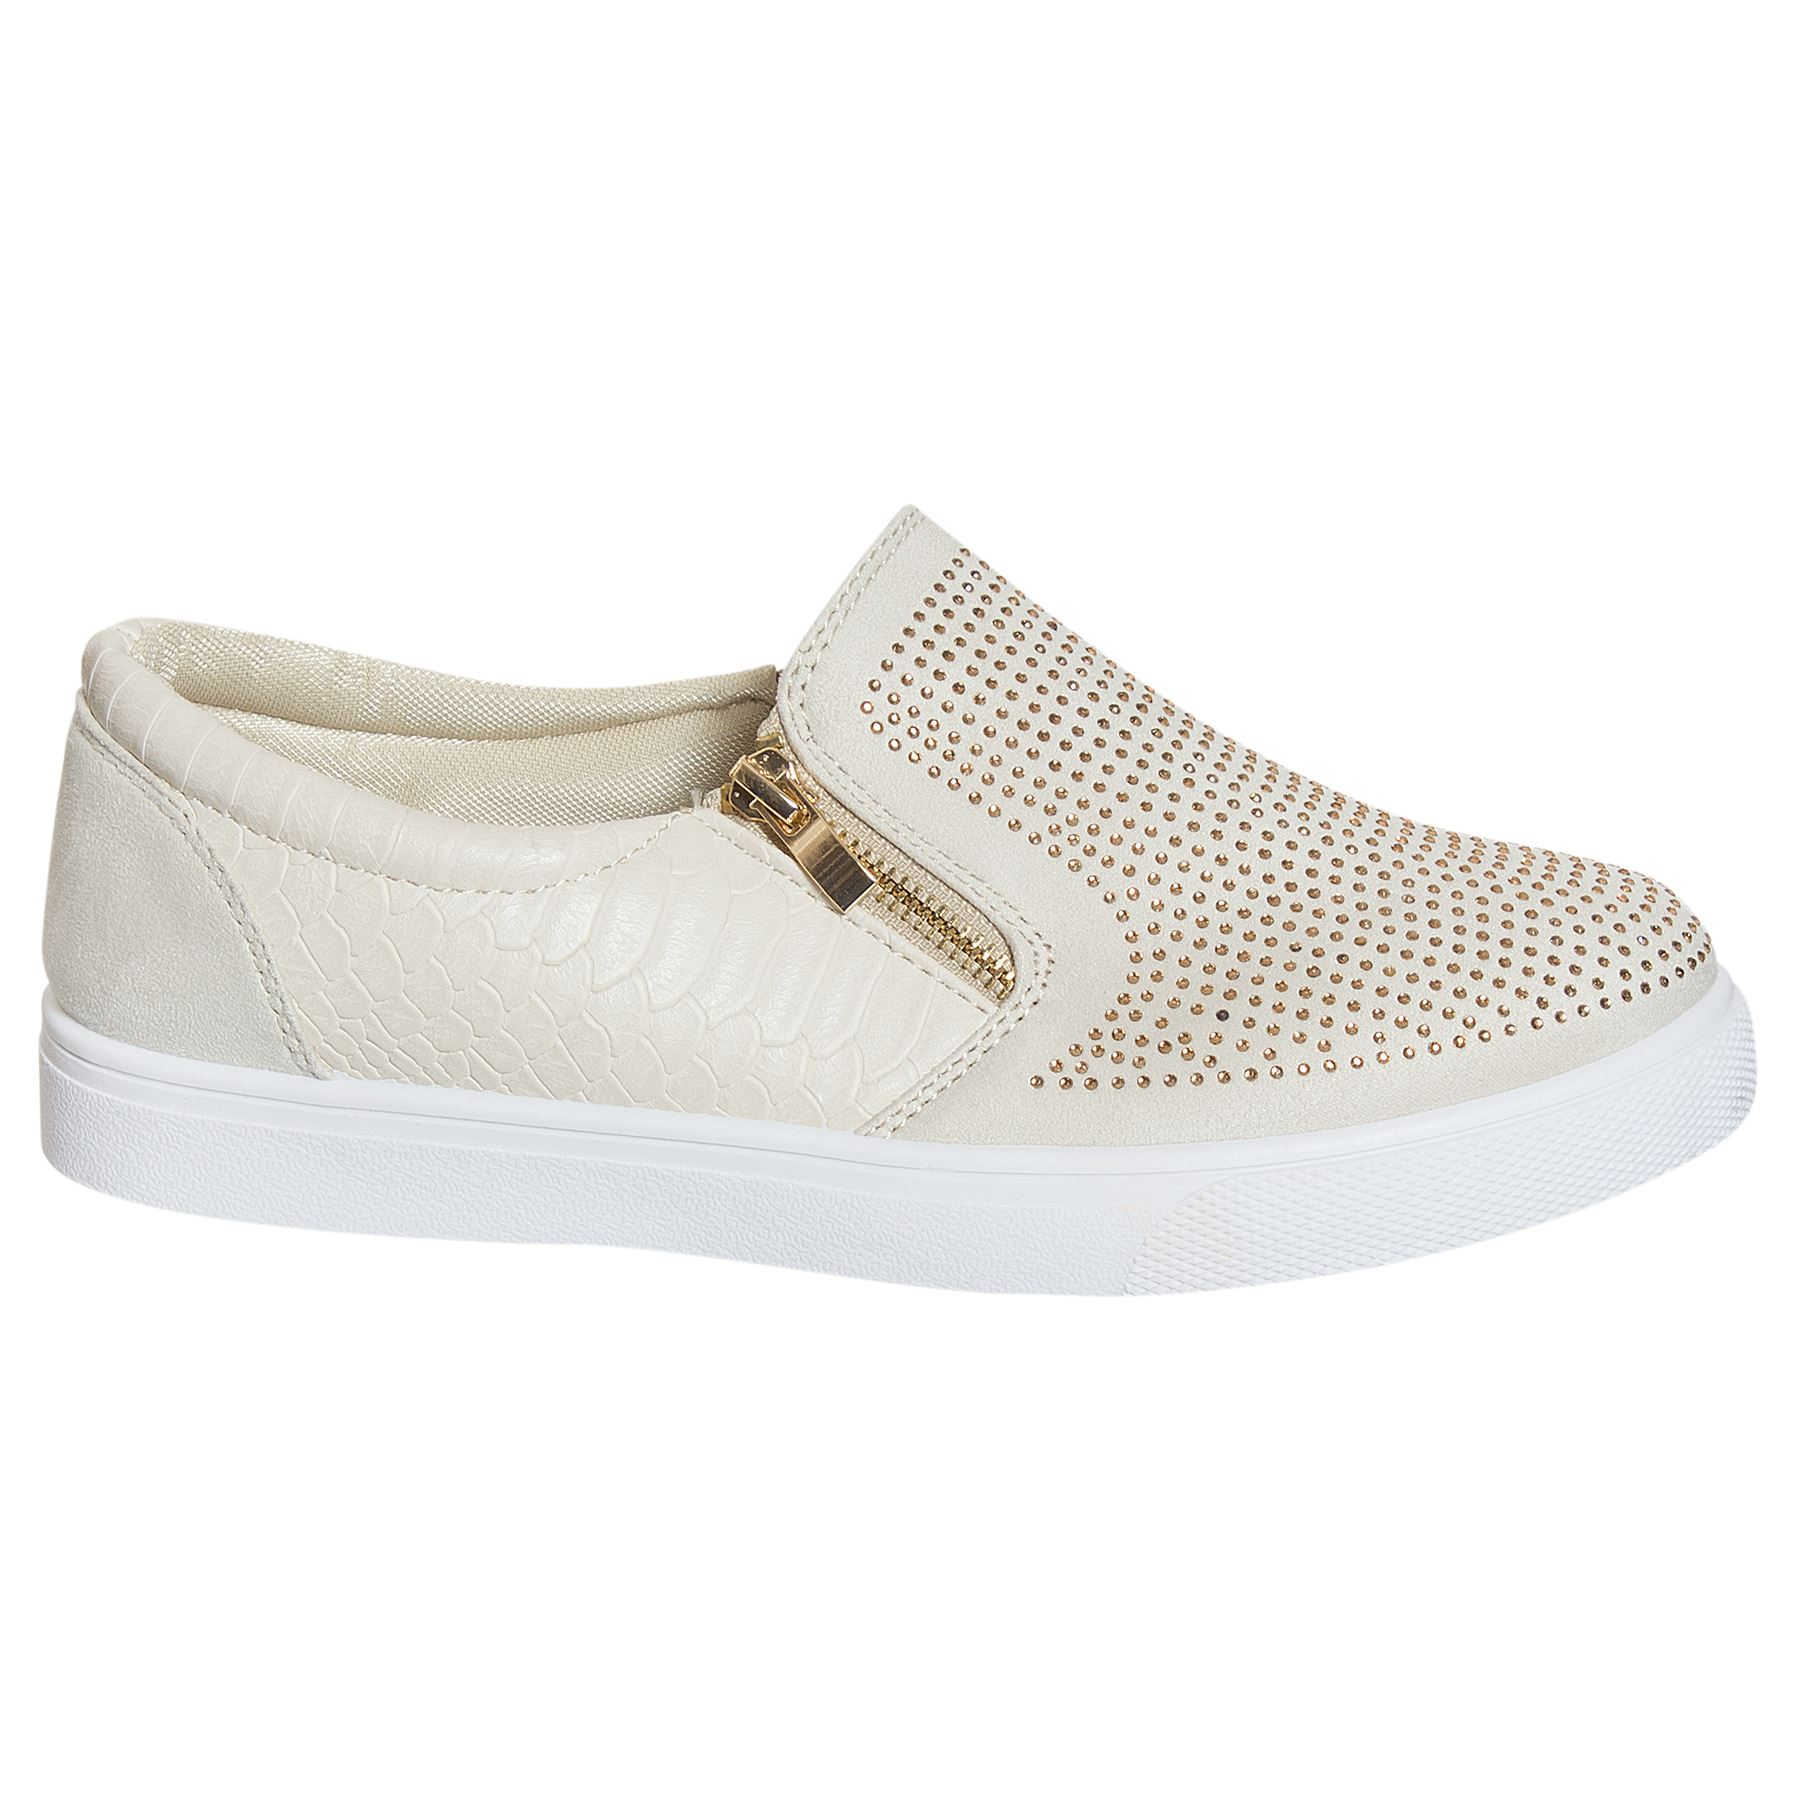 Buy low price, high quality gold slip on sneakers with worldwide shipping on palmmetrf1.ga